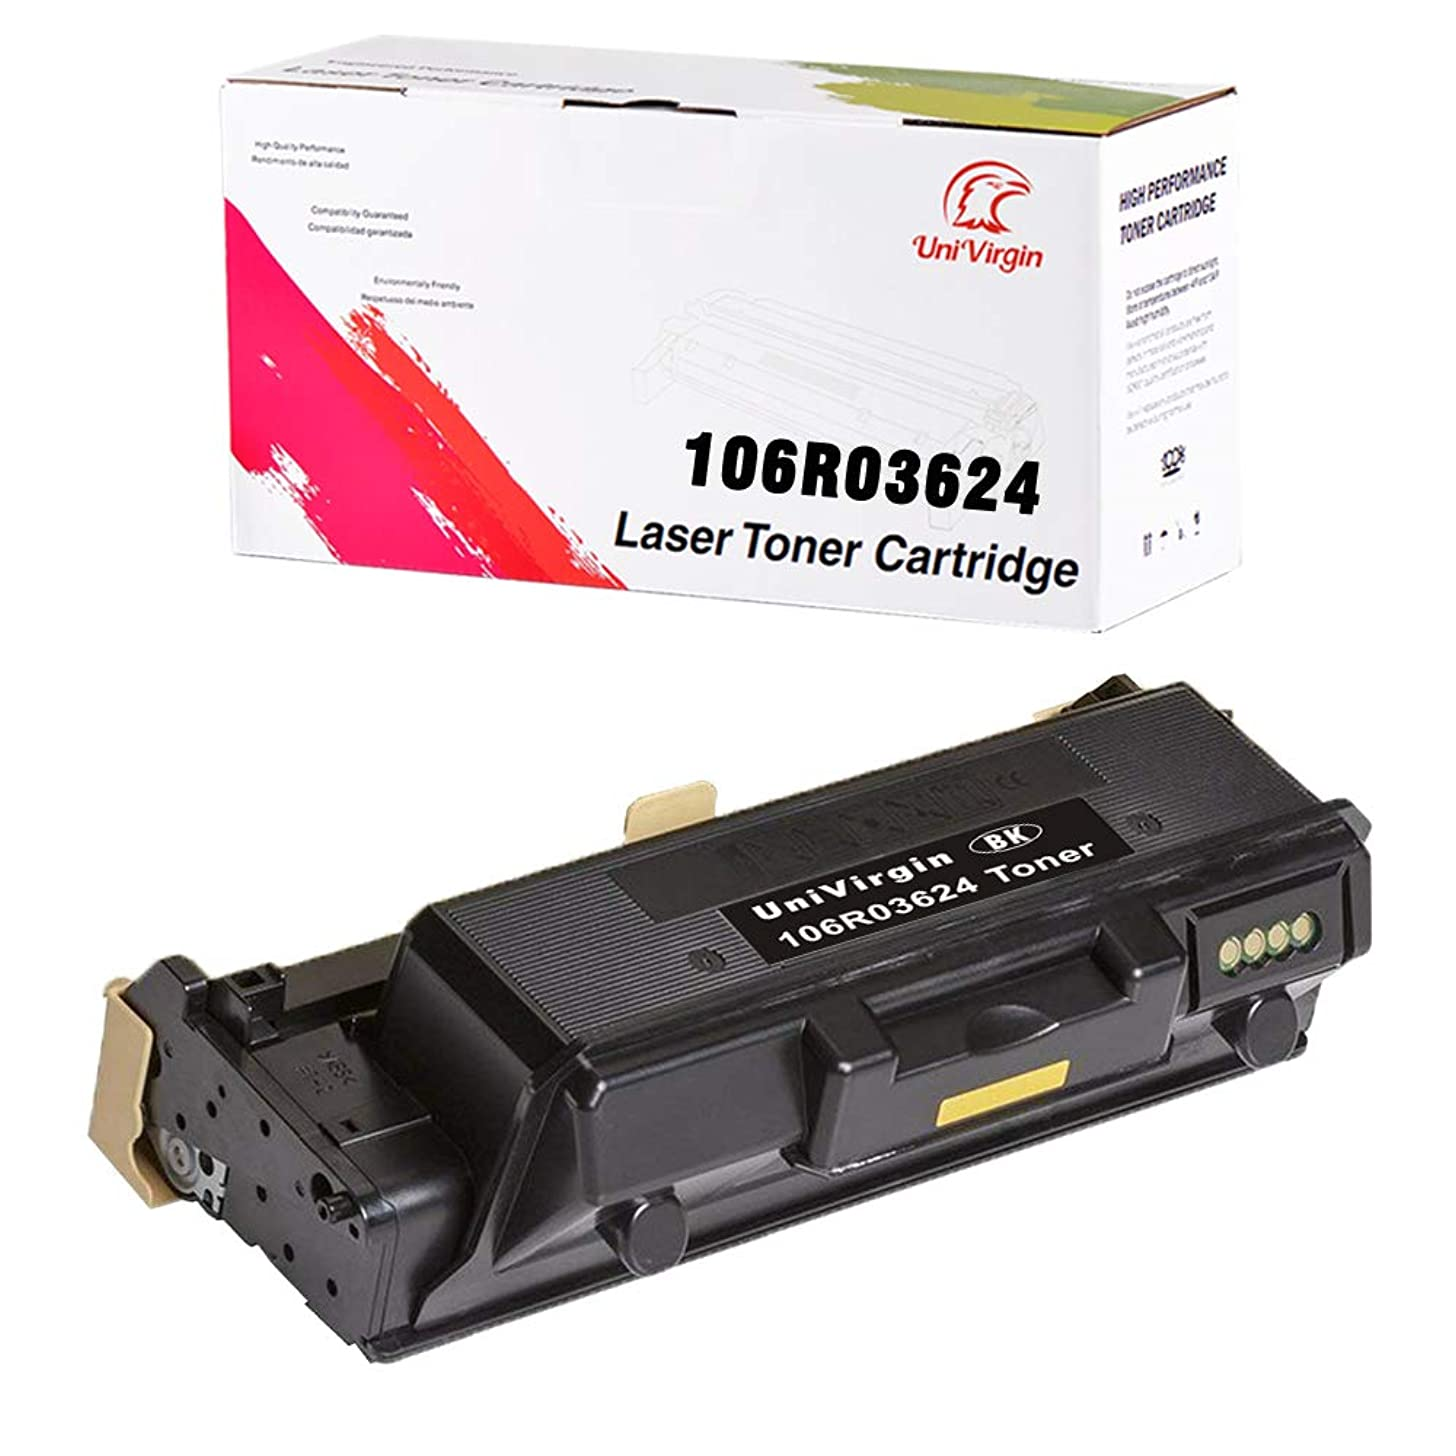 UniVirgin Compatible Toner Replacement for Xerox 106R03624 High Yield 15,000 Pages Toner Cartridge for Use in Xerox WorkCentre 3345, Xerox WorkCentre 3335, Xerox Phaser 3330 (106R03624 Black, 1-Pack)